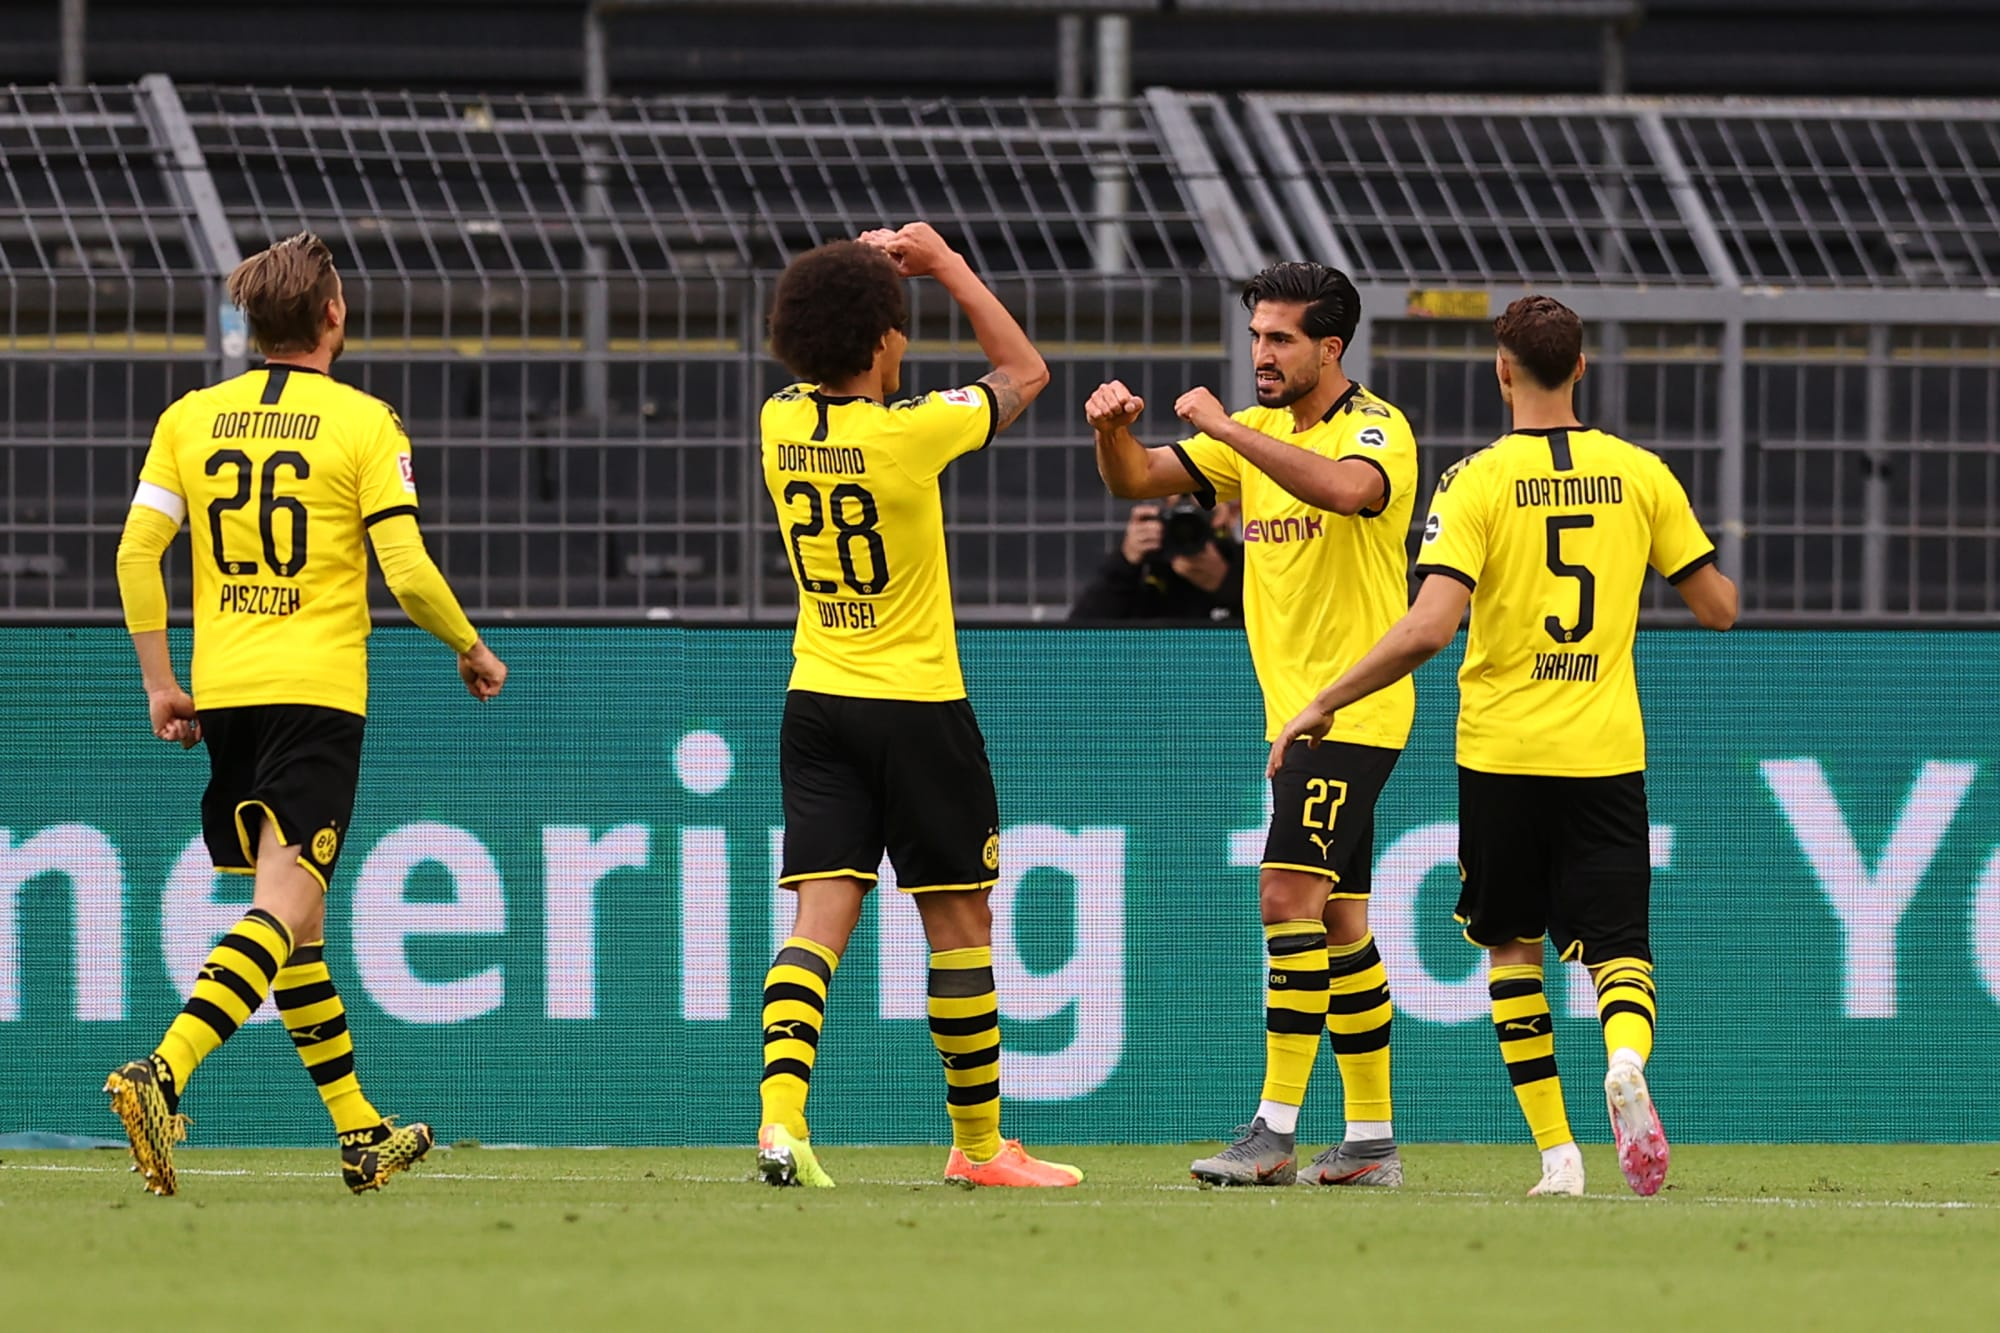 Borussia Dortmund player ratings from narrow win over Hertha Berlin: Emre Can stars on both ends of the pitch